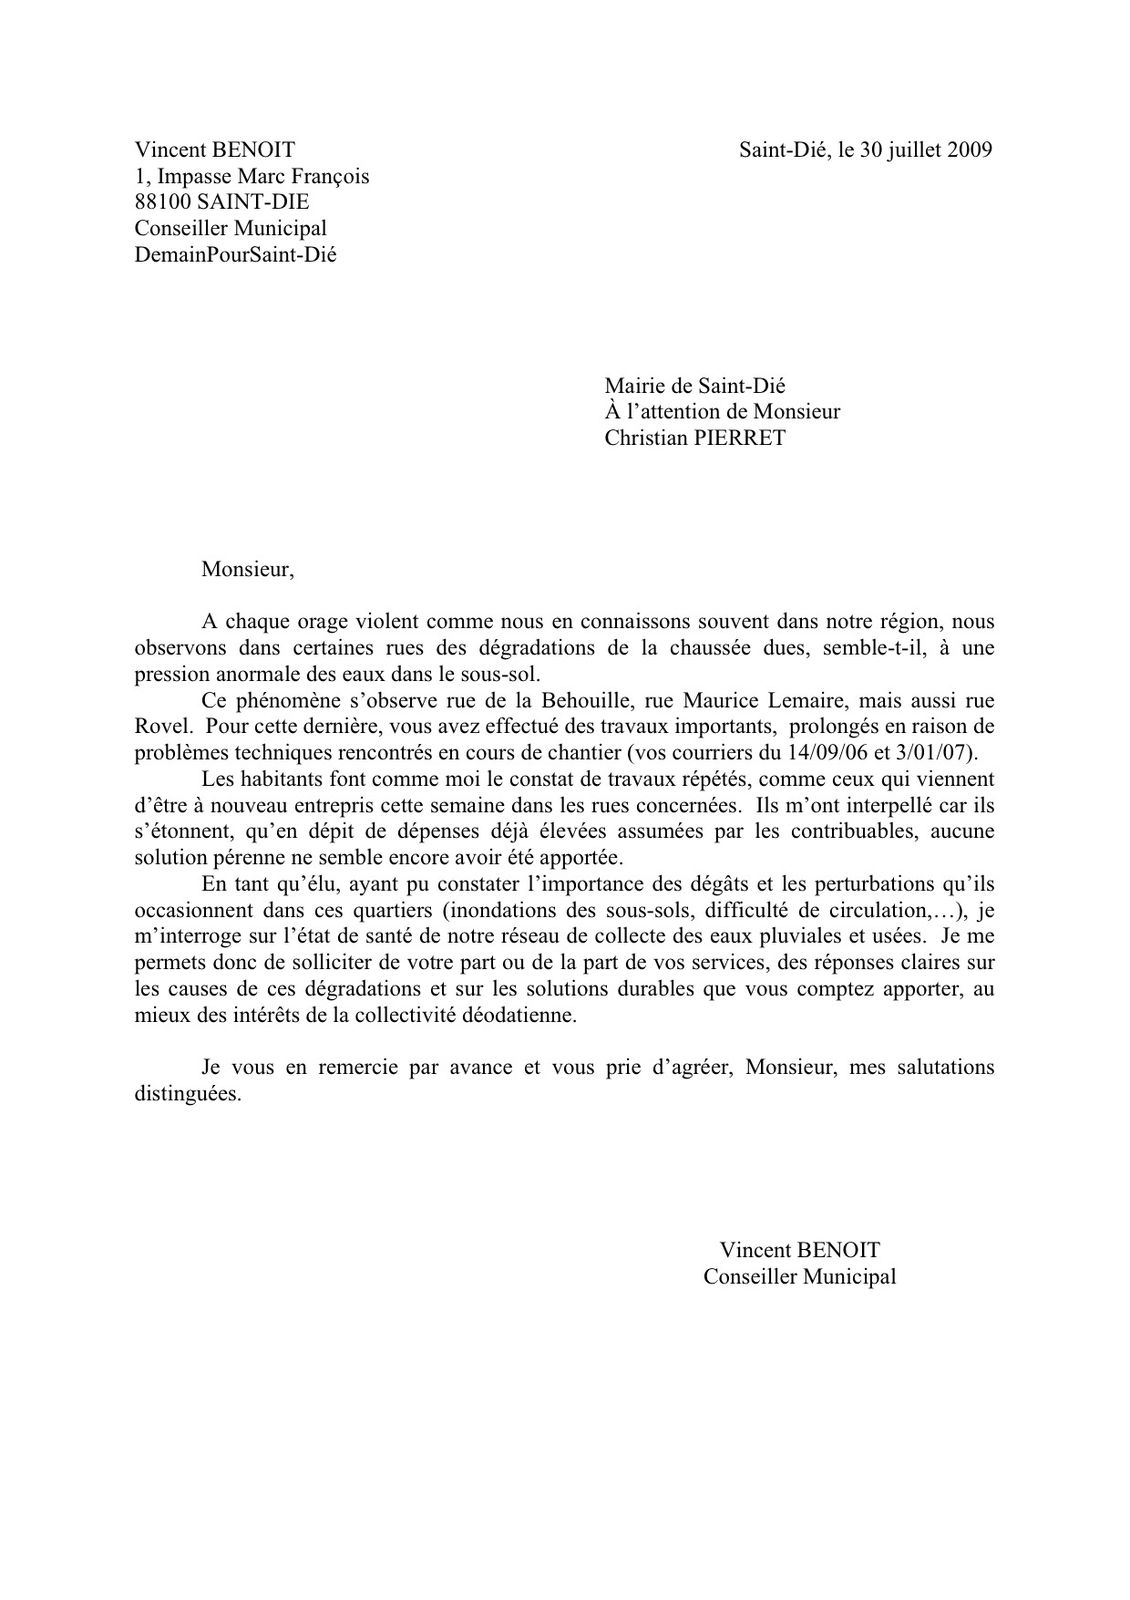 application letter sample  modele de lettre de motivation pour travailler a la cantine